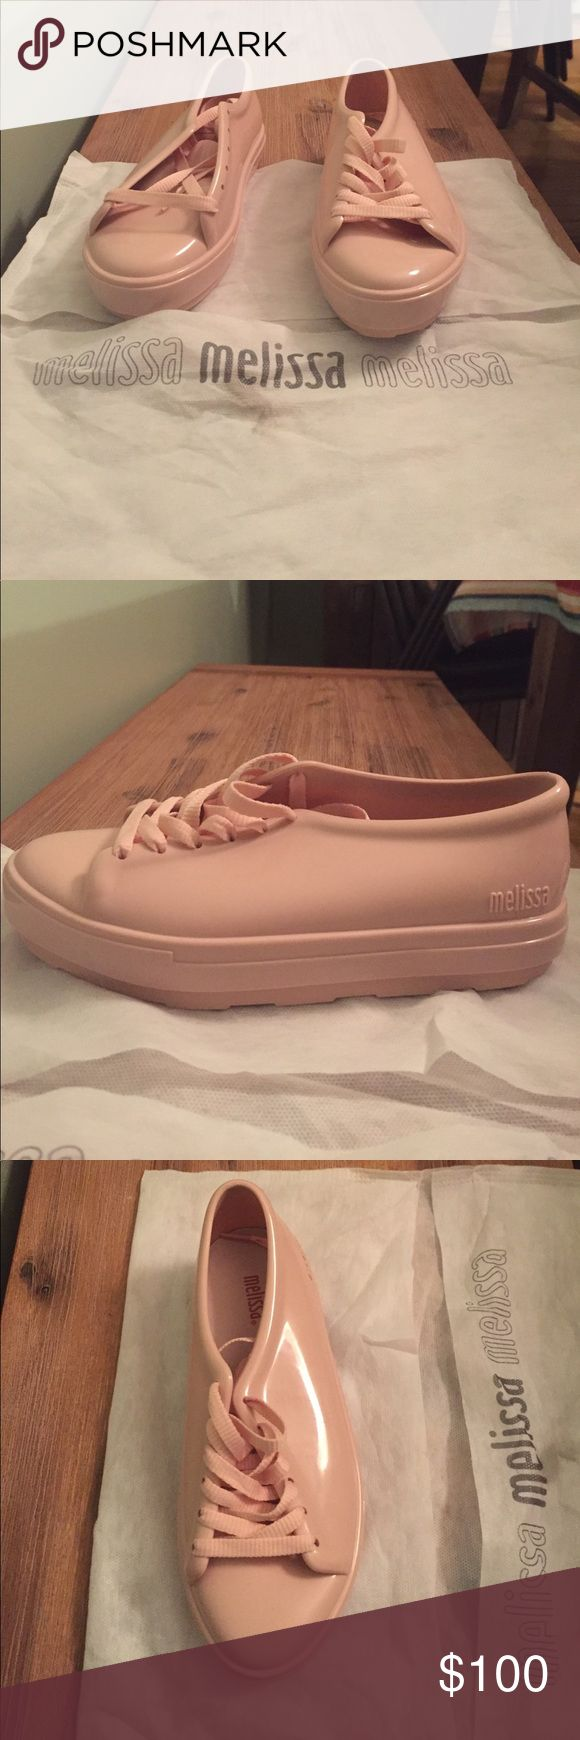 NEW!!!! Melissa light pink sneakers NEW!!!! Light pink, rubber sneaker. Original Melissa from Brazil and made in Brazil. Melissa Shoes Sneakers